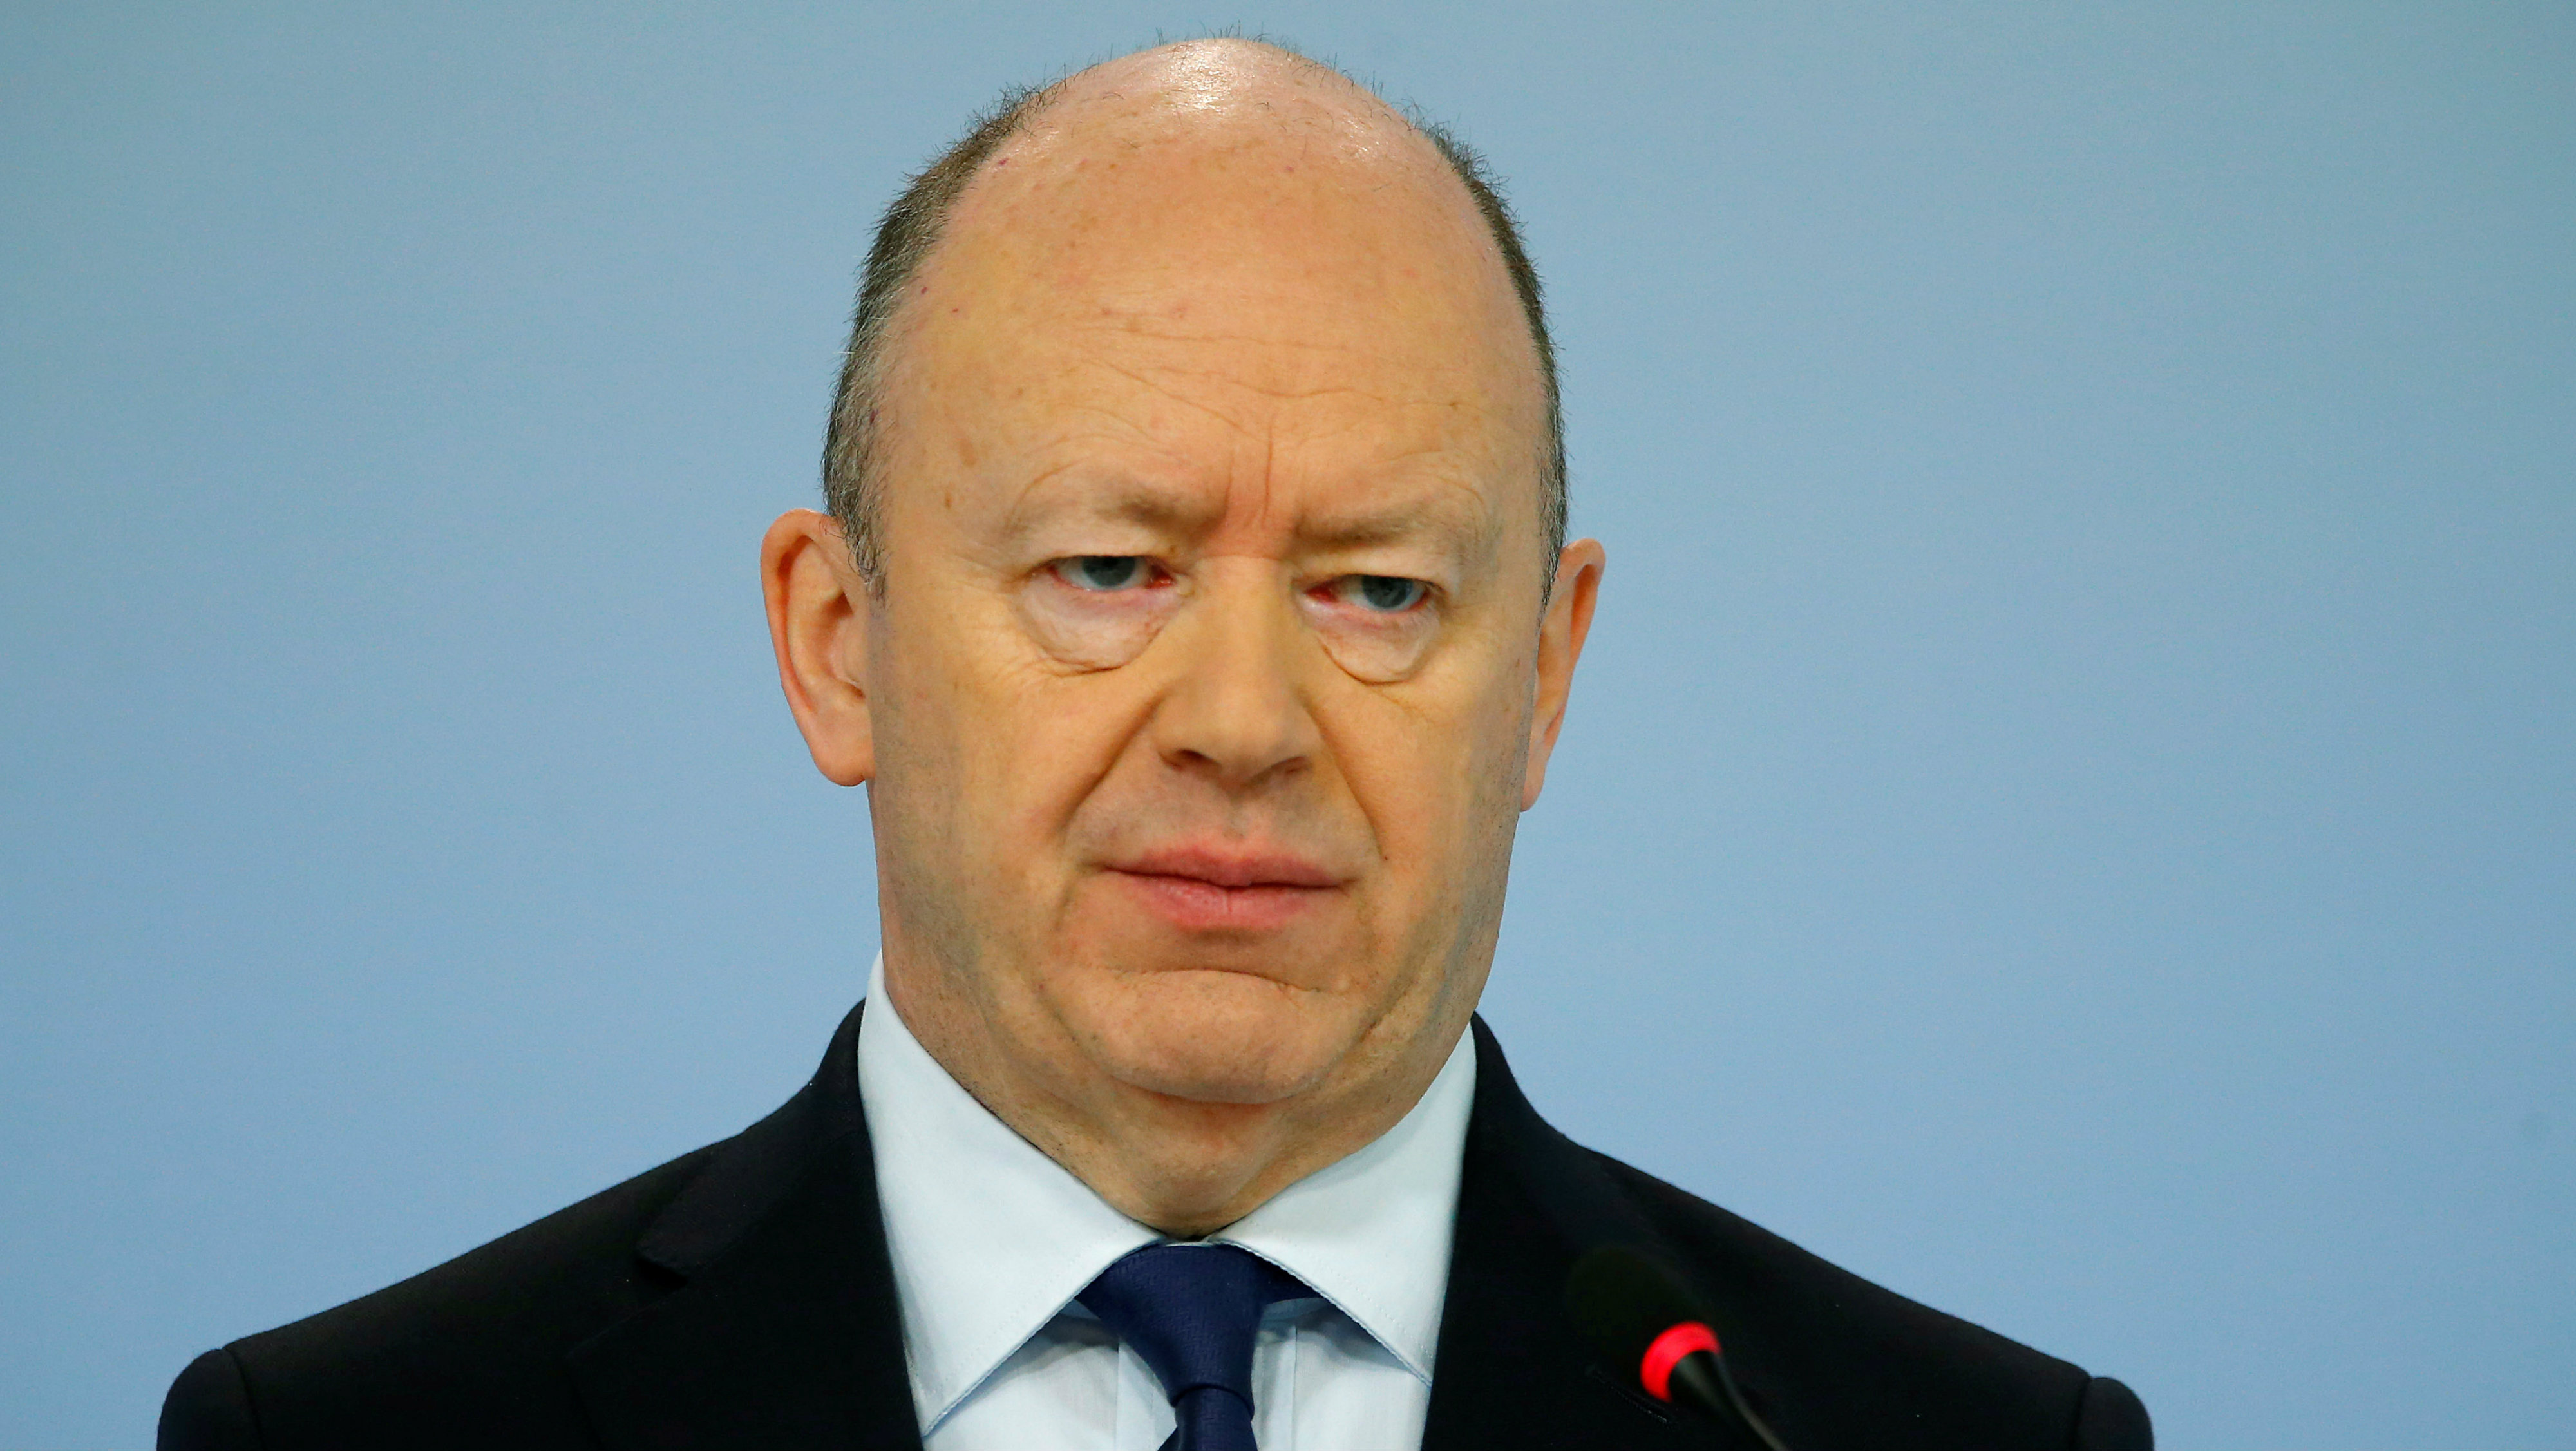 John Cryan, CEO of Germany's Deutsche Bank is pictured in Frankfurt, Germany, February 2, 2018.